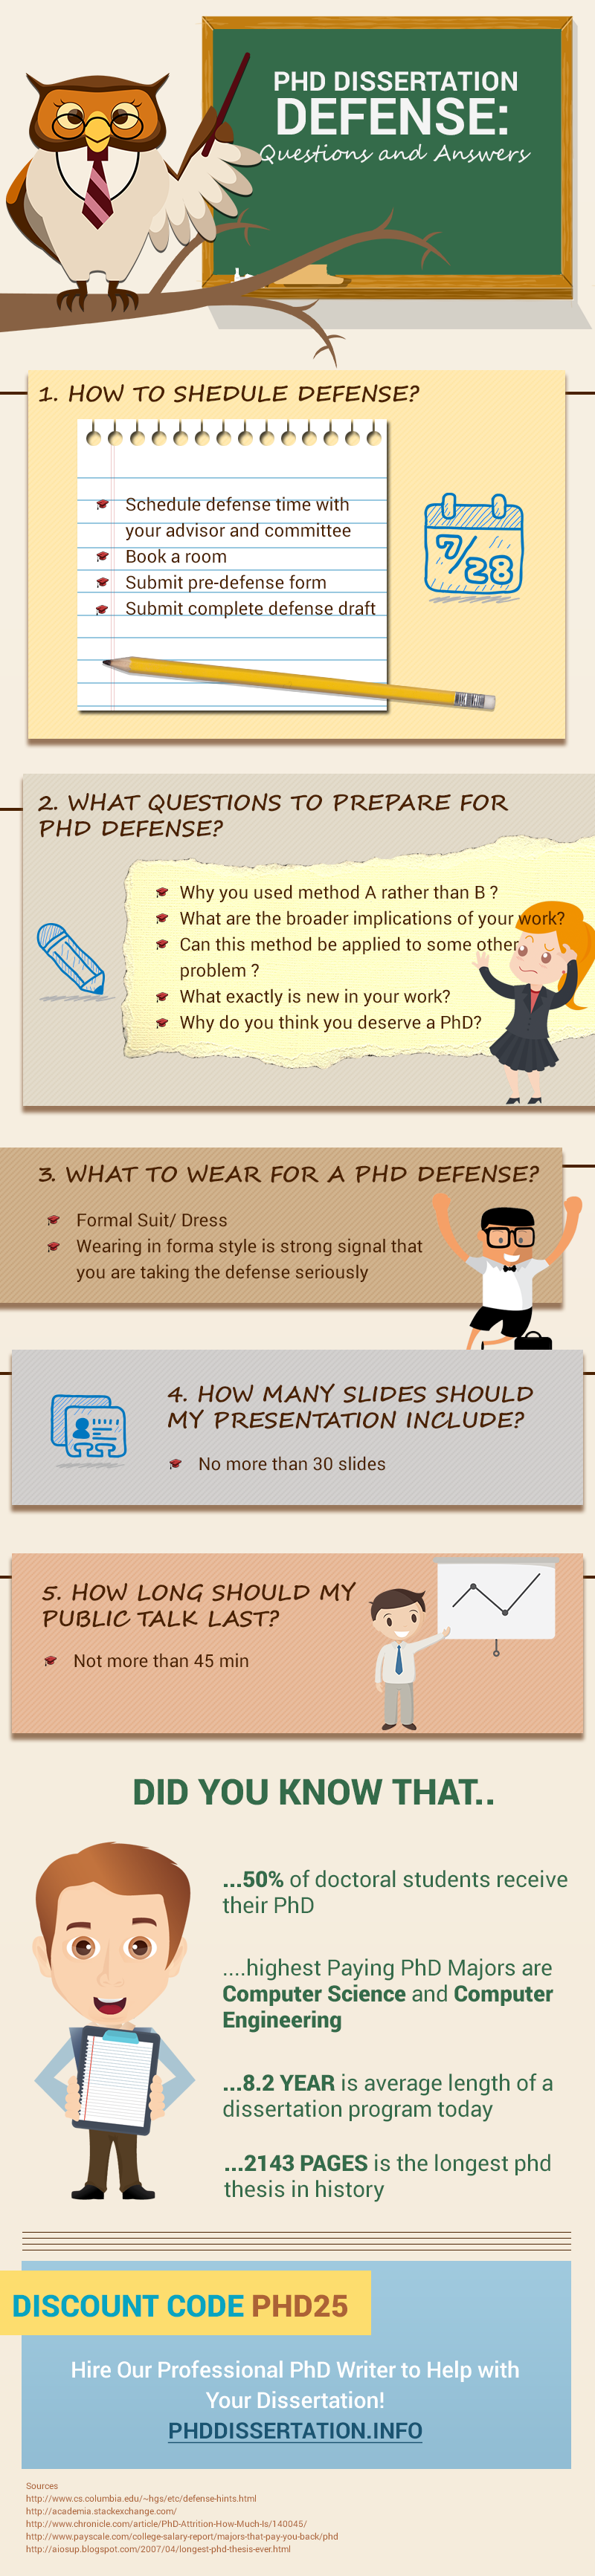 Need Help with Your Proposal for PhD Research?